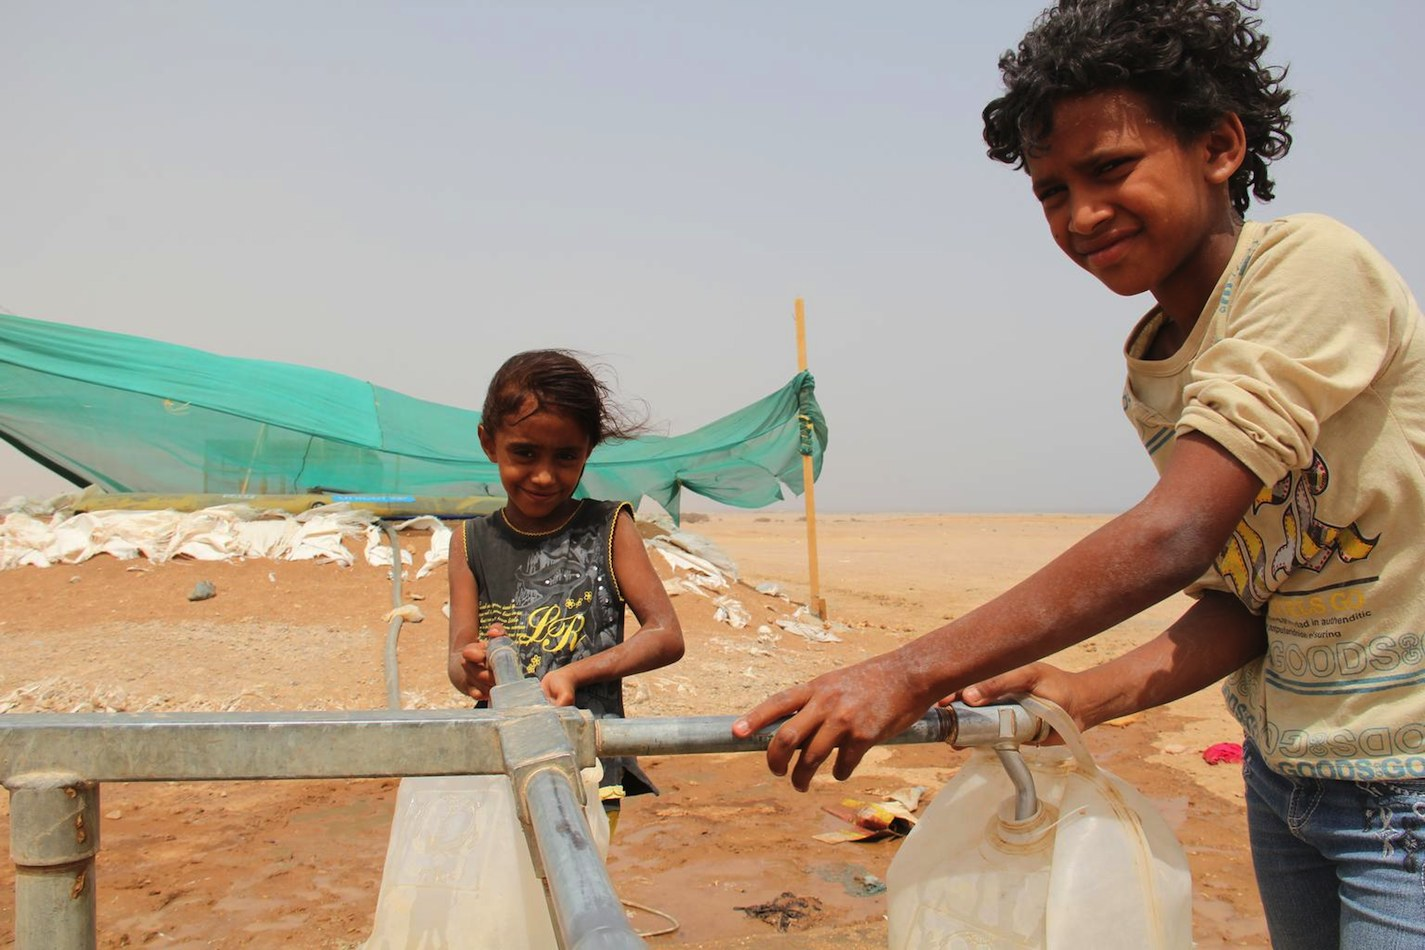 11-year-old Adam, a refugee from Yemen's terrible conflict, fetches water from a UNICEF-installed pump at the Markazi refugee in Obock, Djibouti.